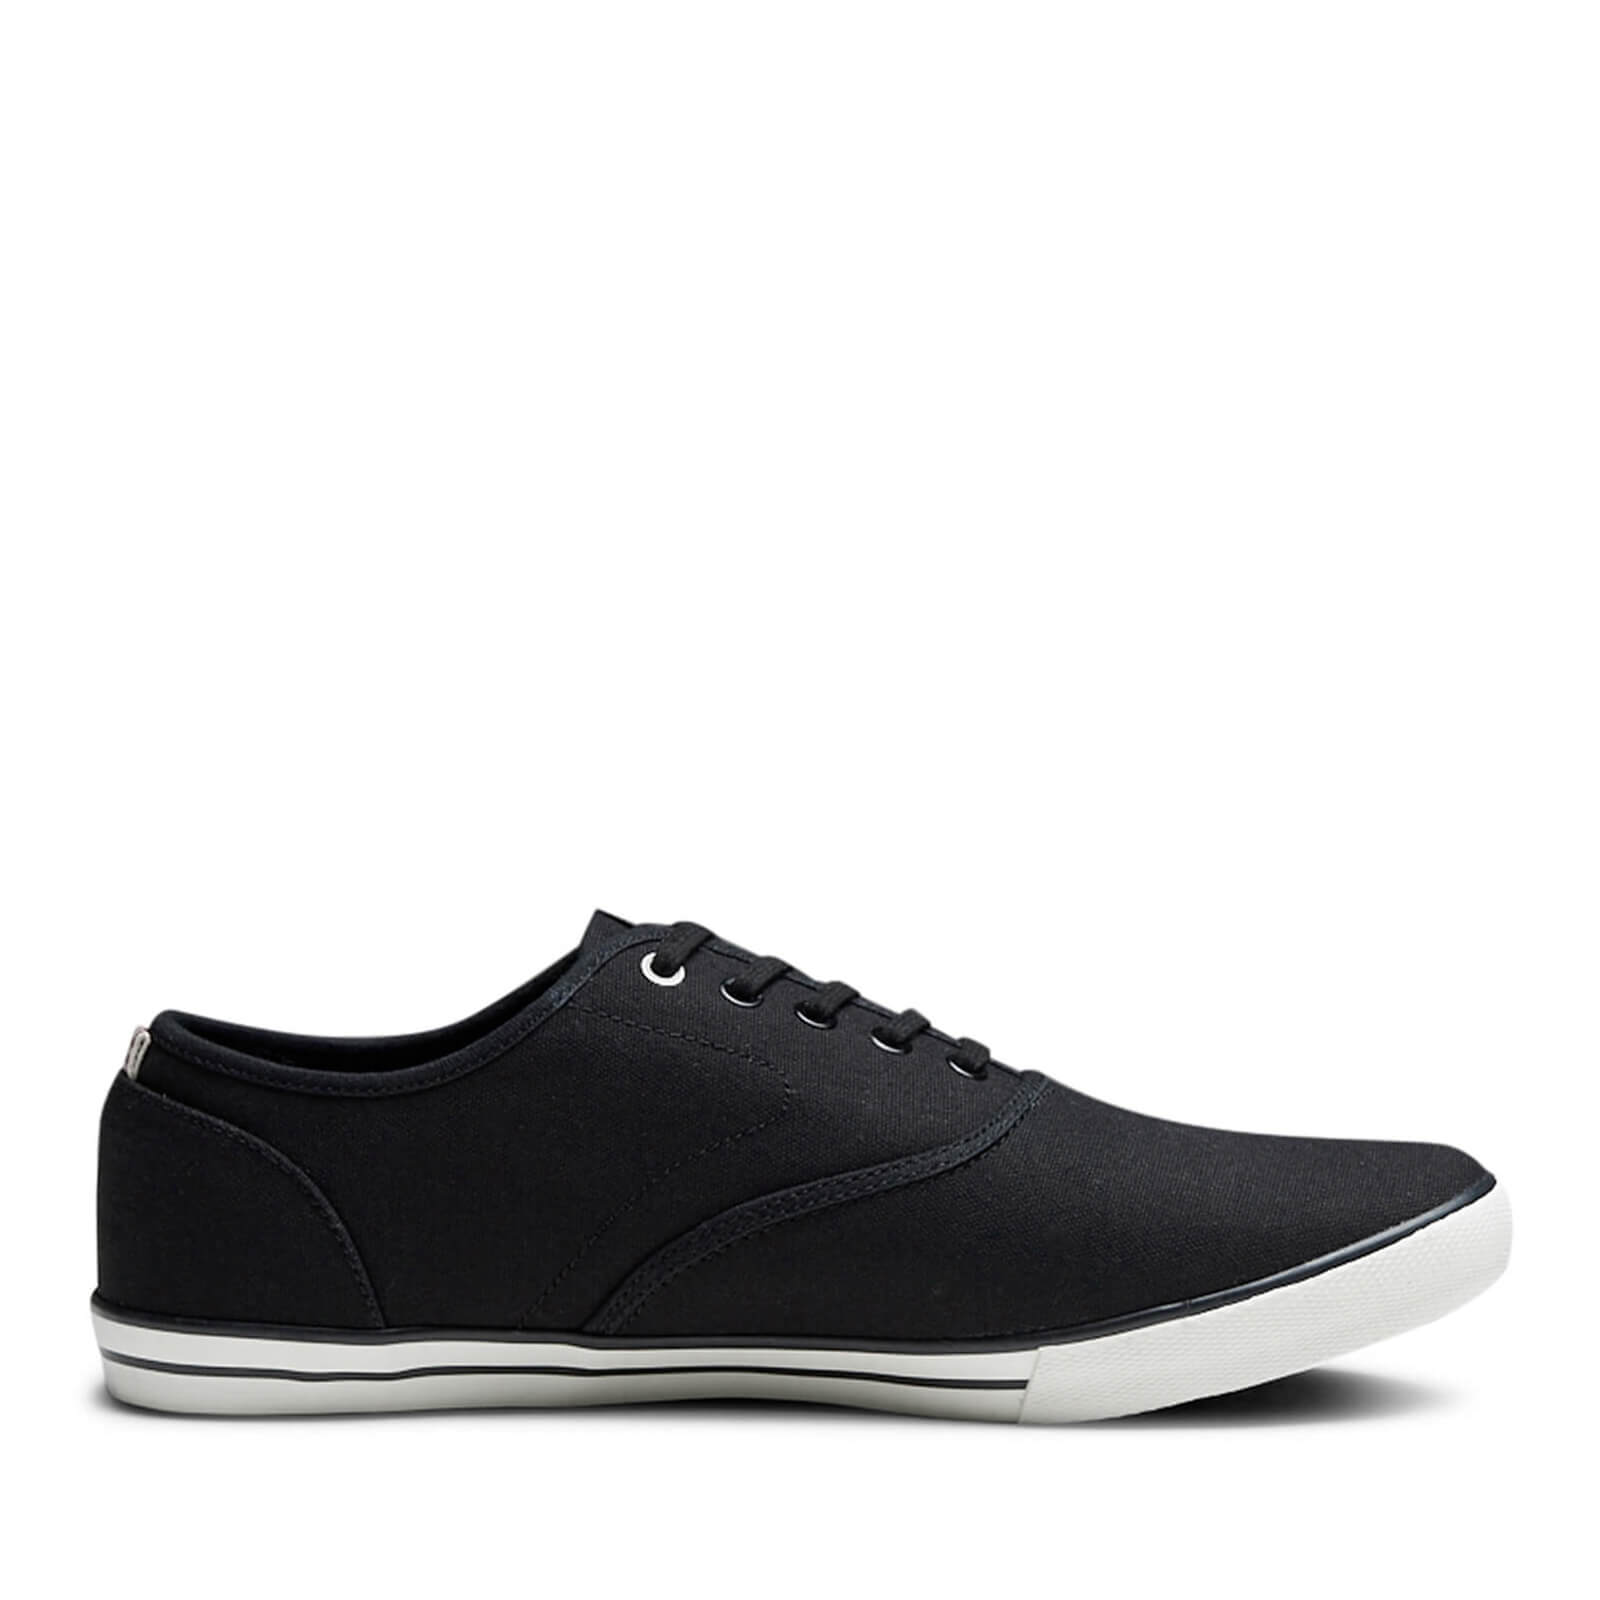 Chaussures Tennis en Toile Homme Scorpion Jack & Jones - Gris Anthracite